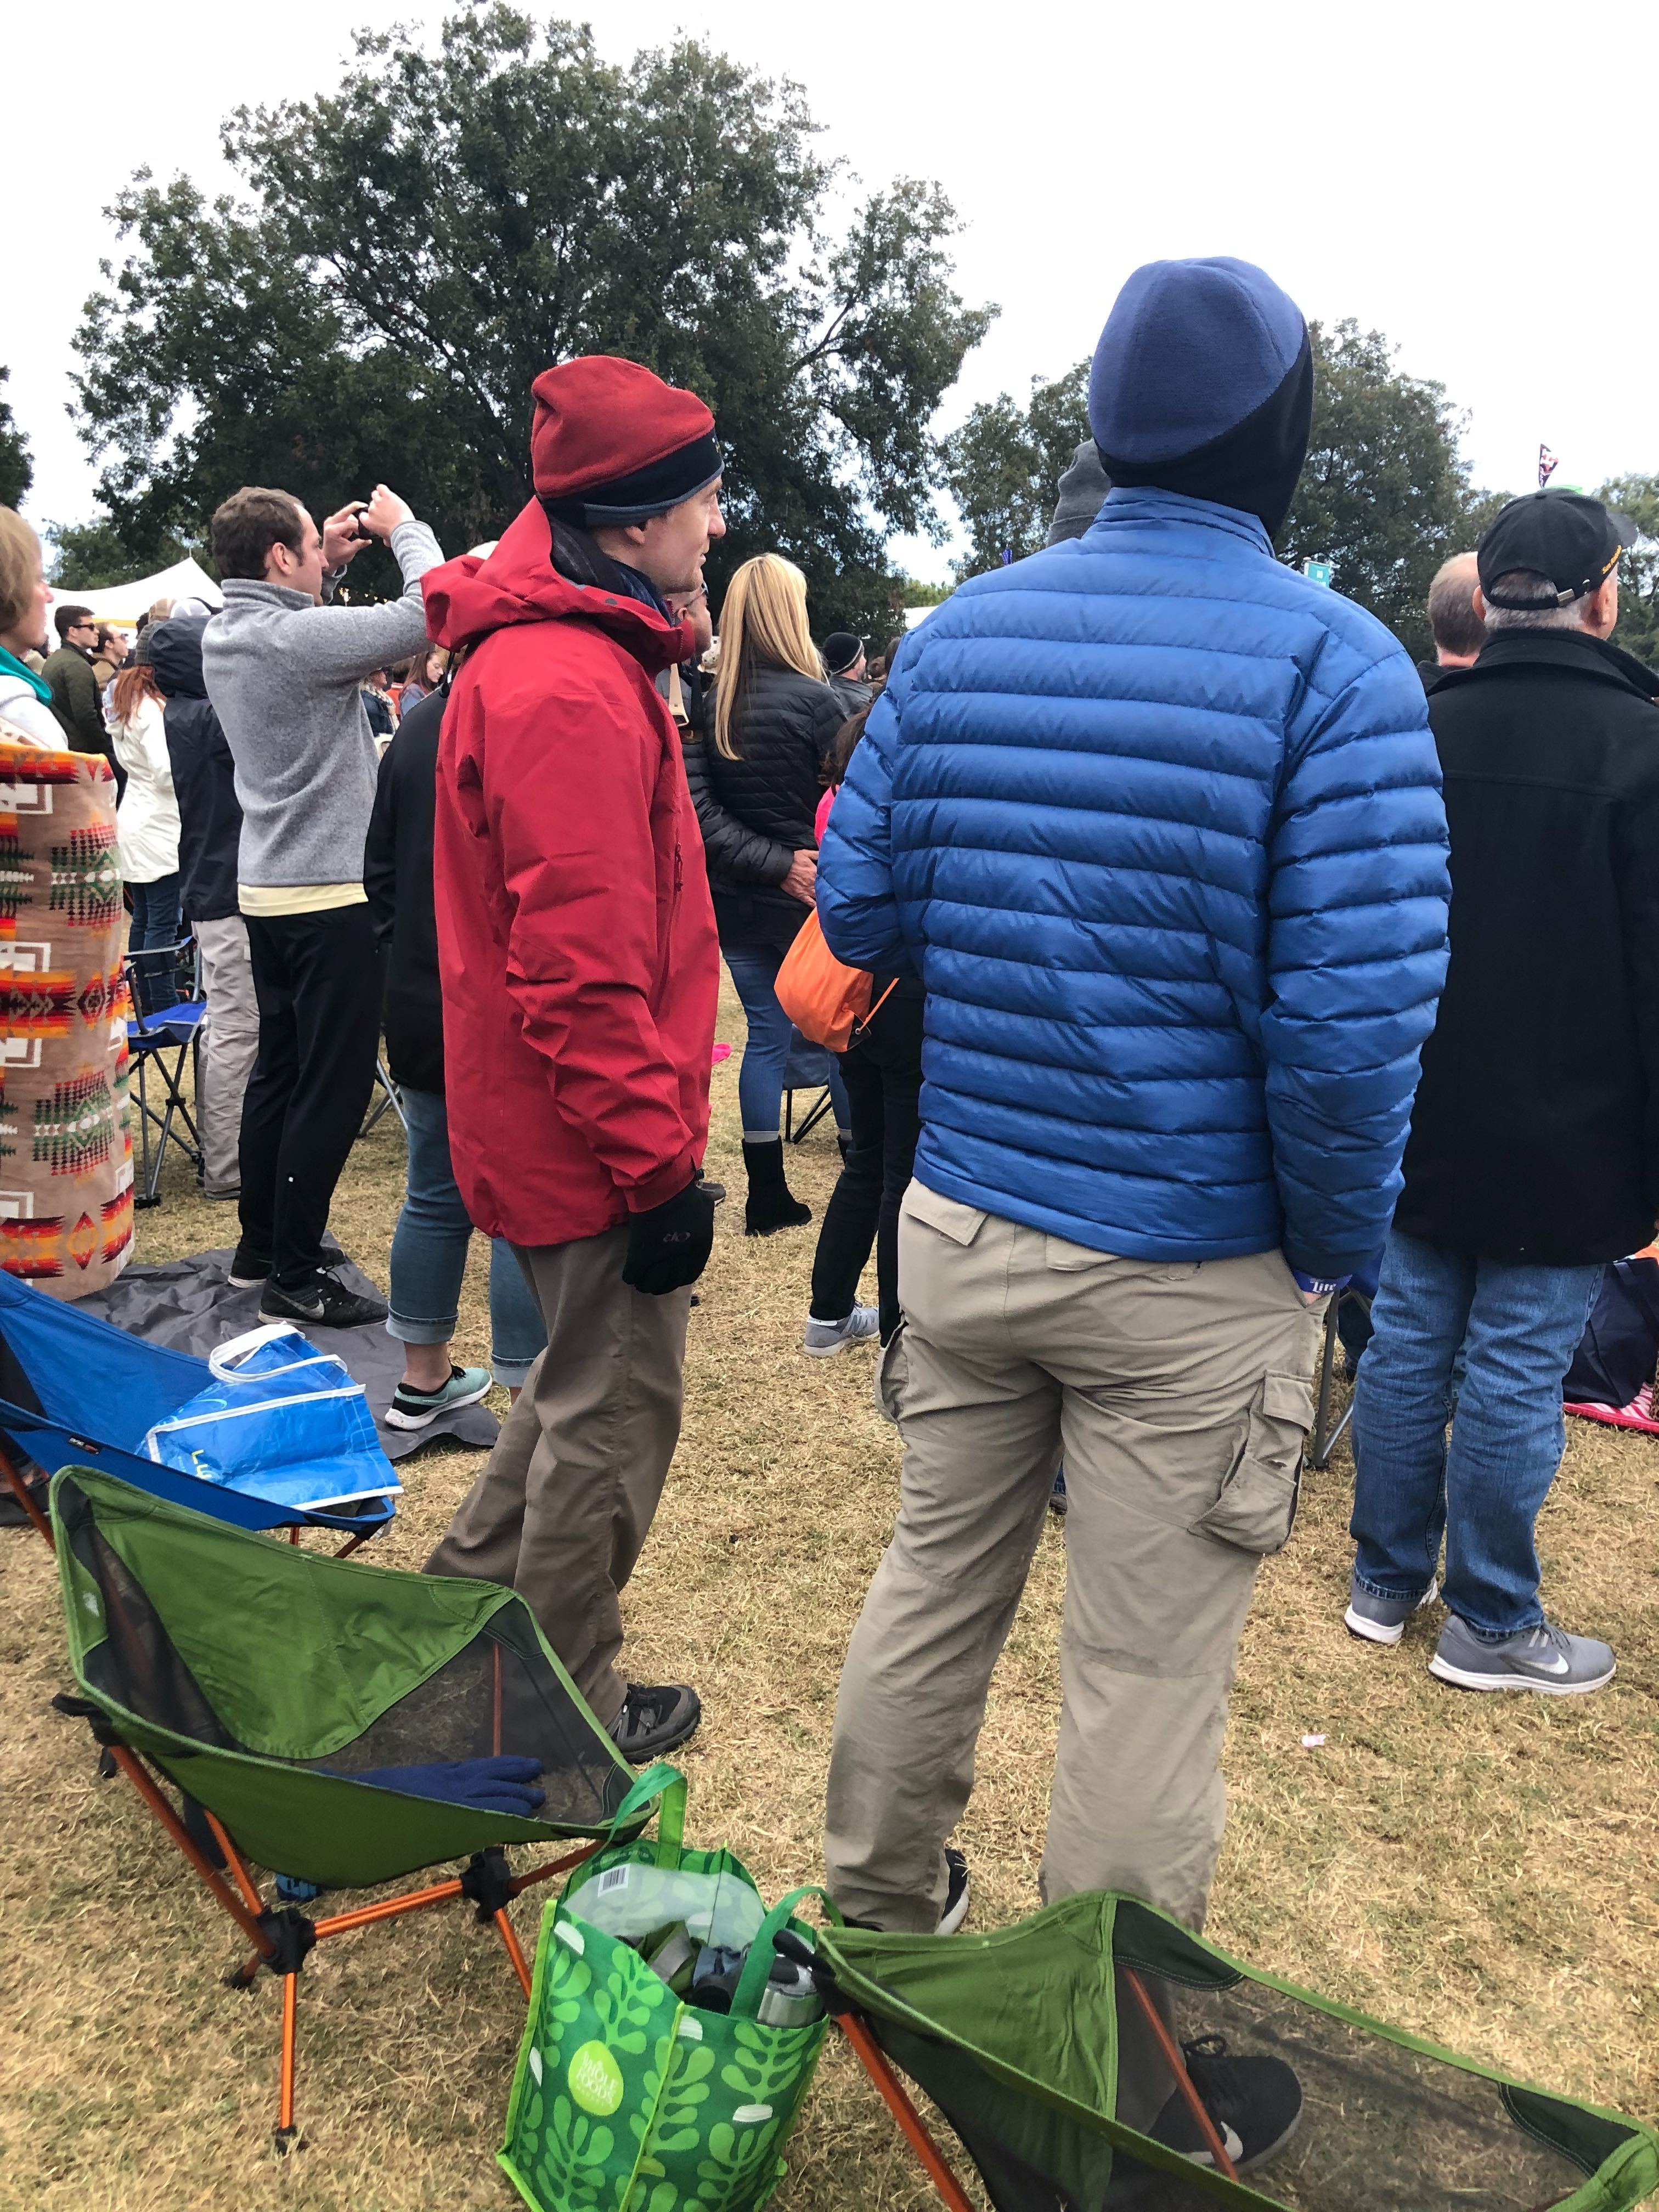 A bundled up crowd listens to the Raconteurs on Weekend 2 of ACL 2019 (KXAN Photo/Erin Cargile)